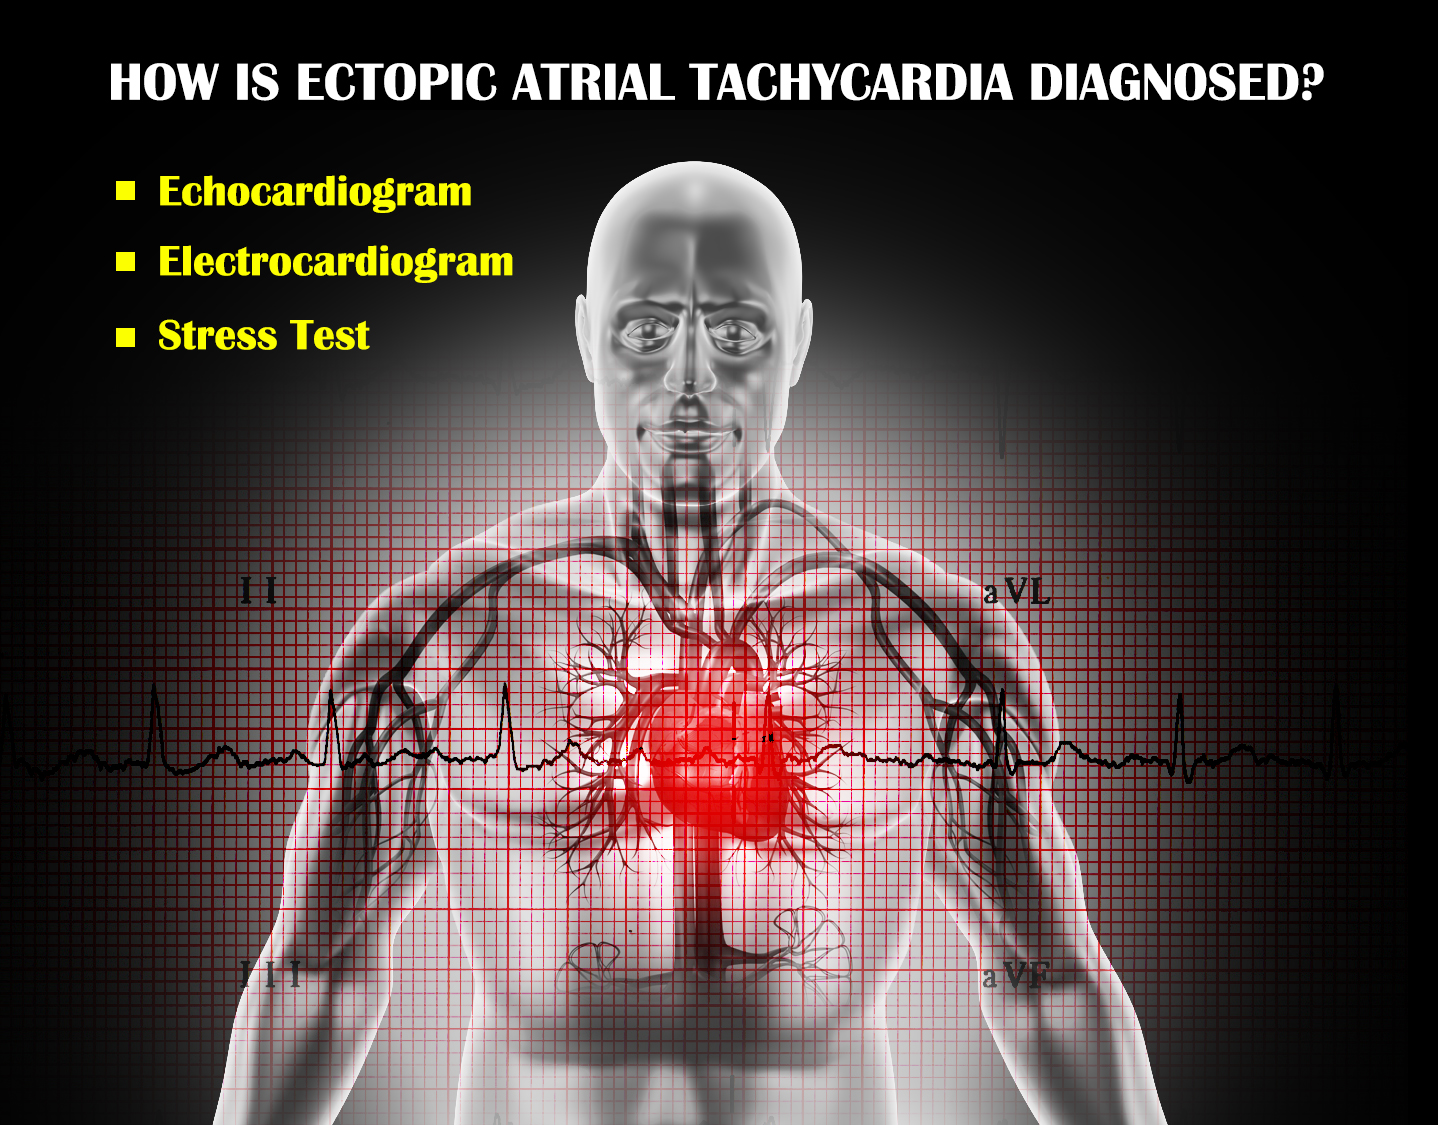 How is Ectopic Atrial Tachycardia Diagnosed